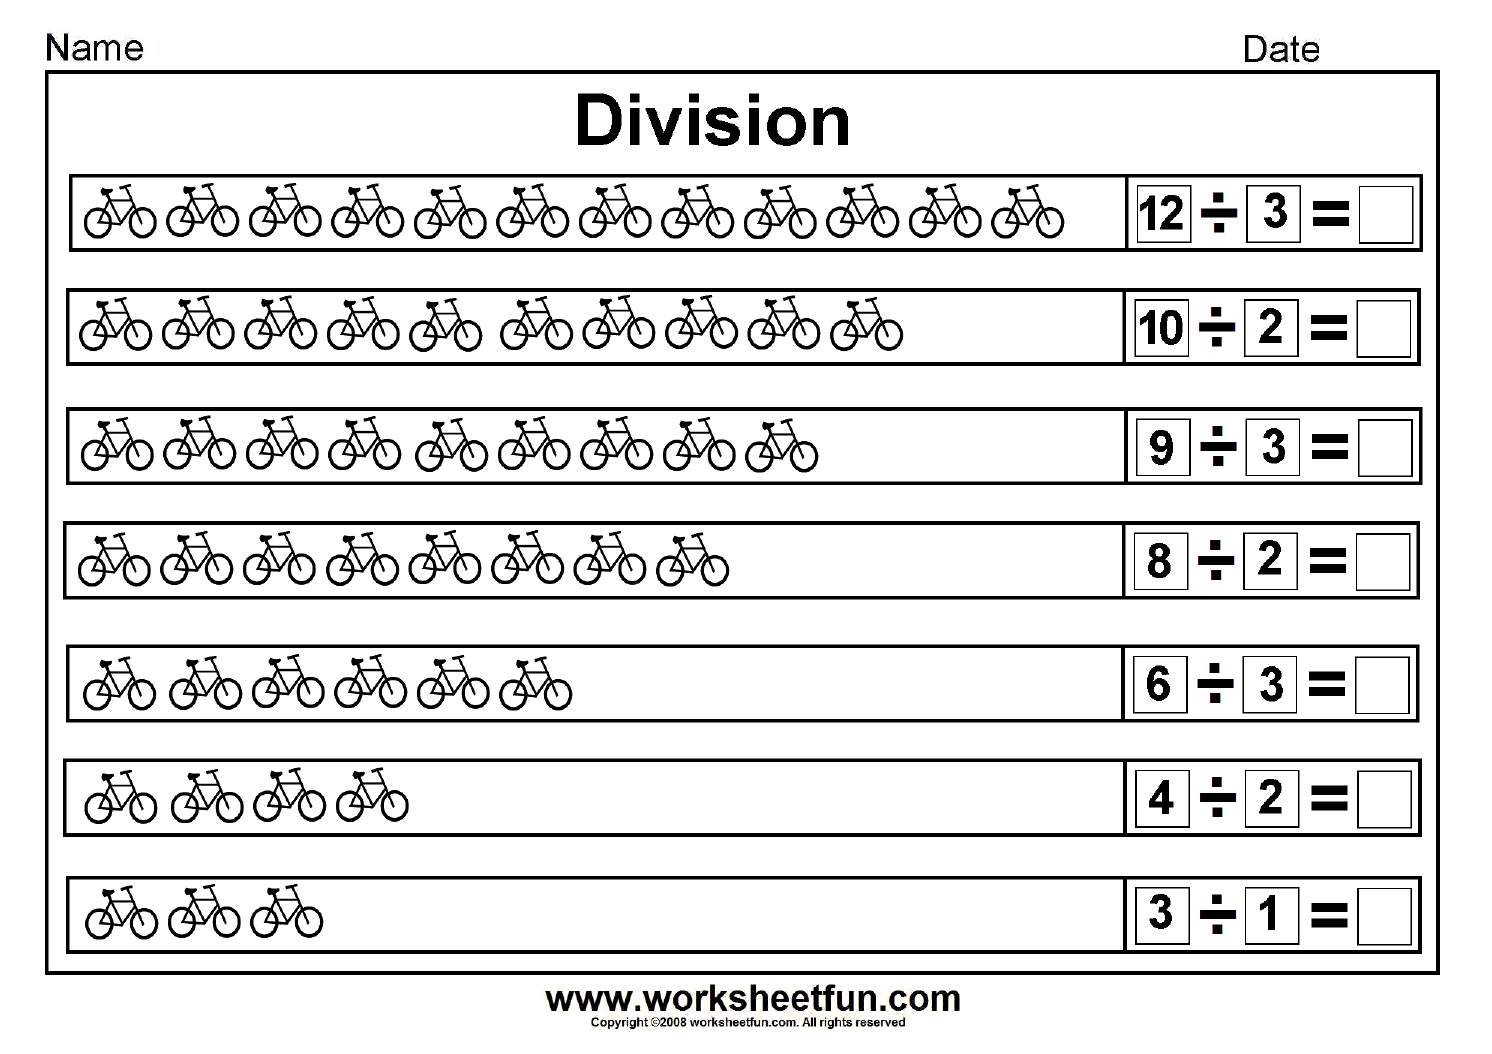 Division Worksheets On Worksheetfun Com